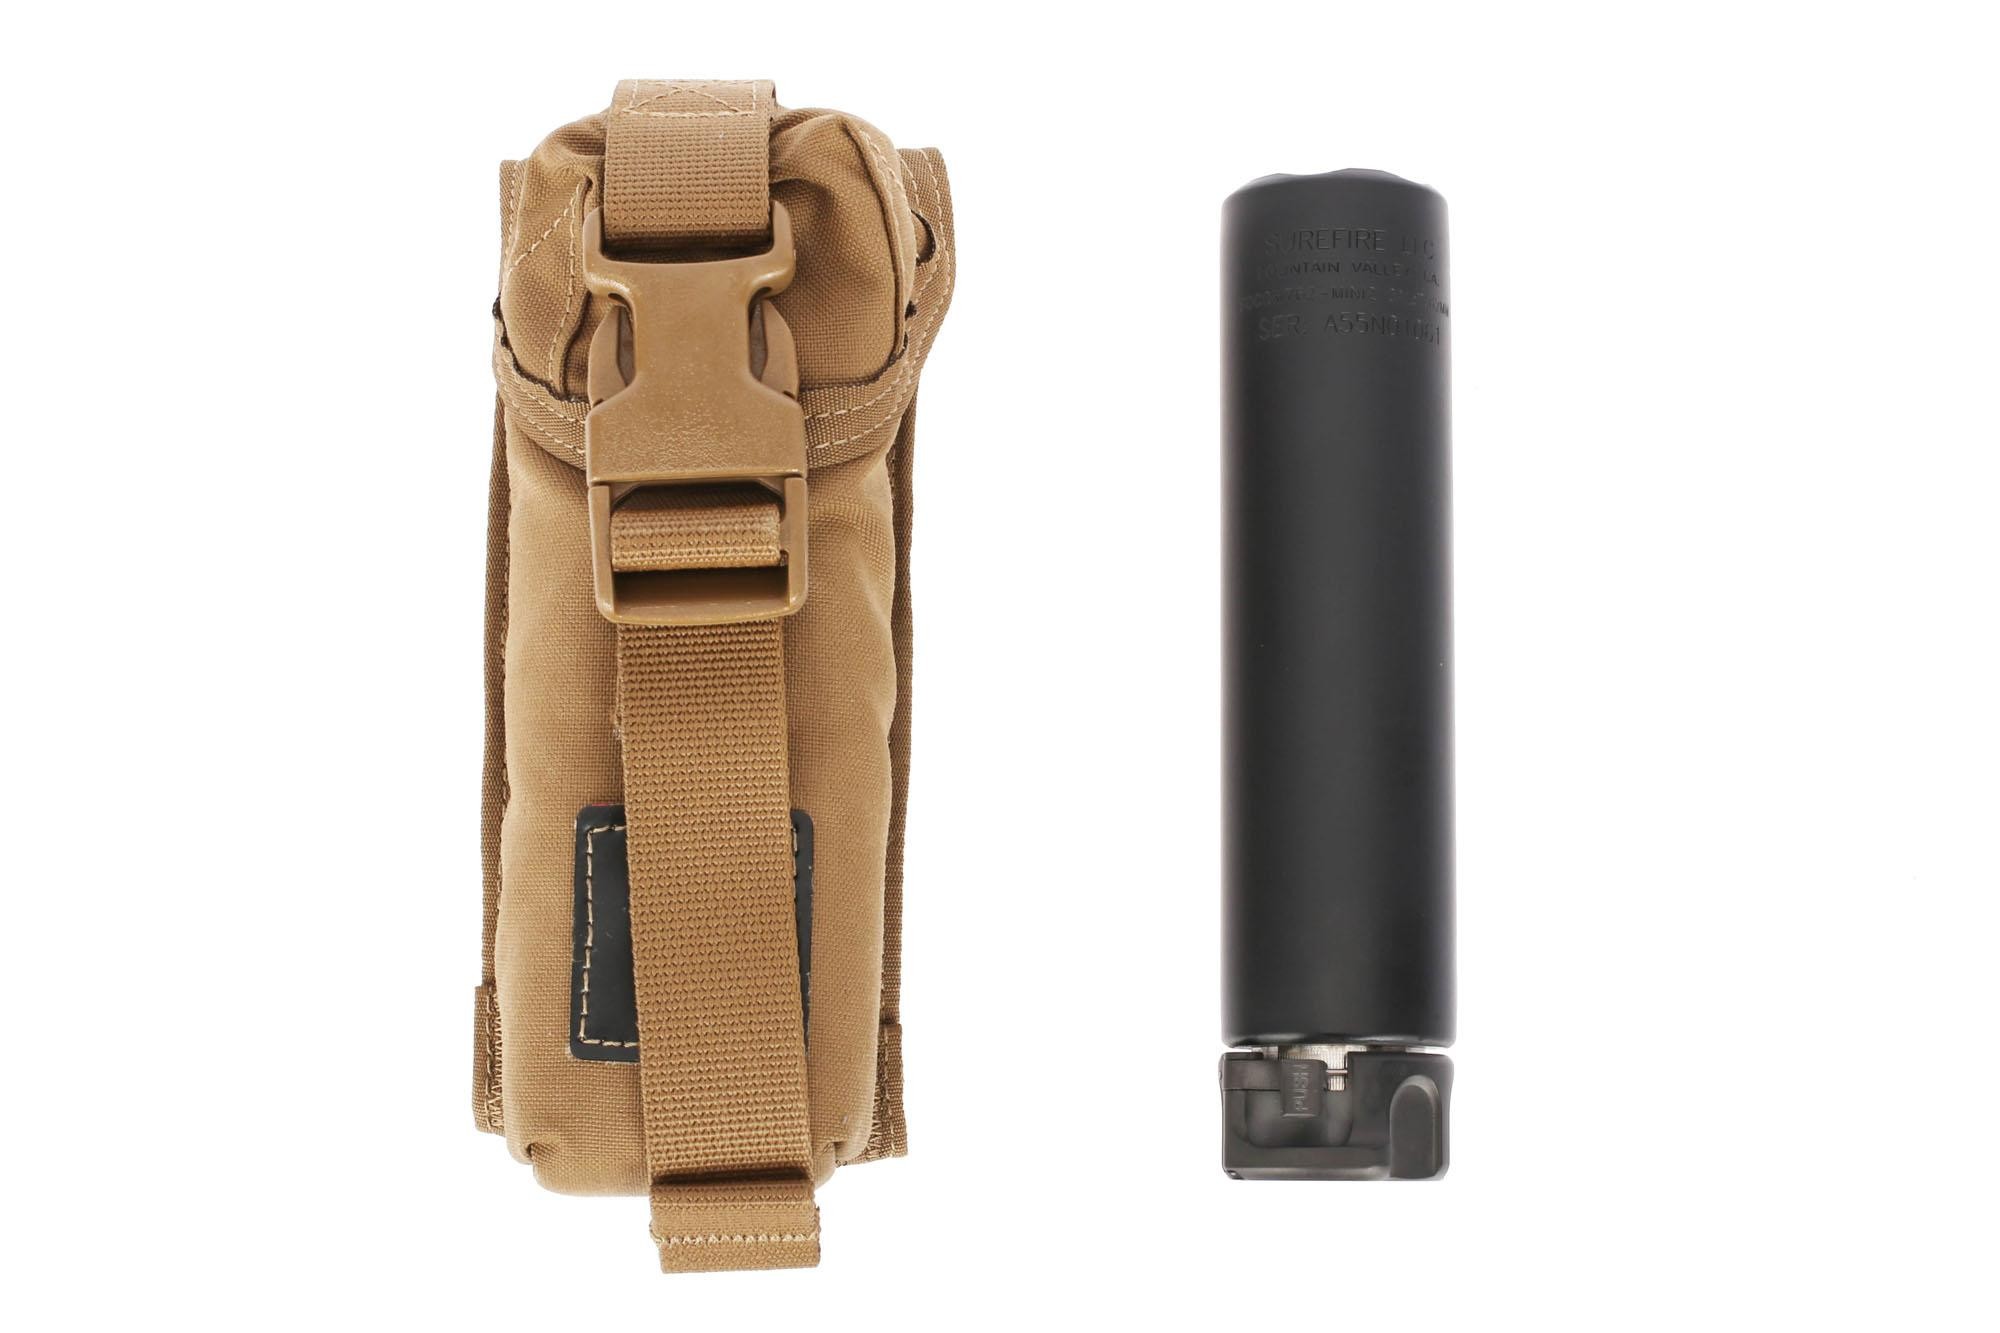 SureFire's Fast Attach black SOCOM 7.62 MINI2 Rifle suppressor includes a tan MOLLE carry case